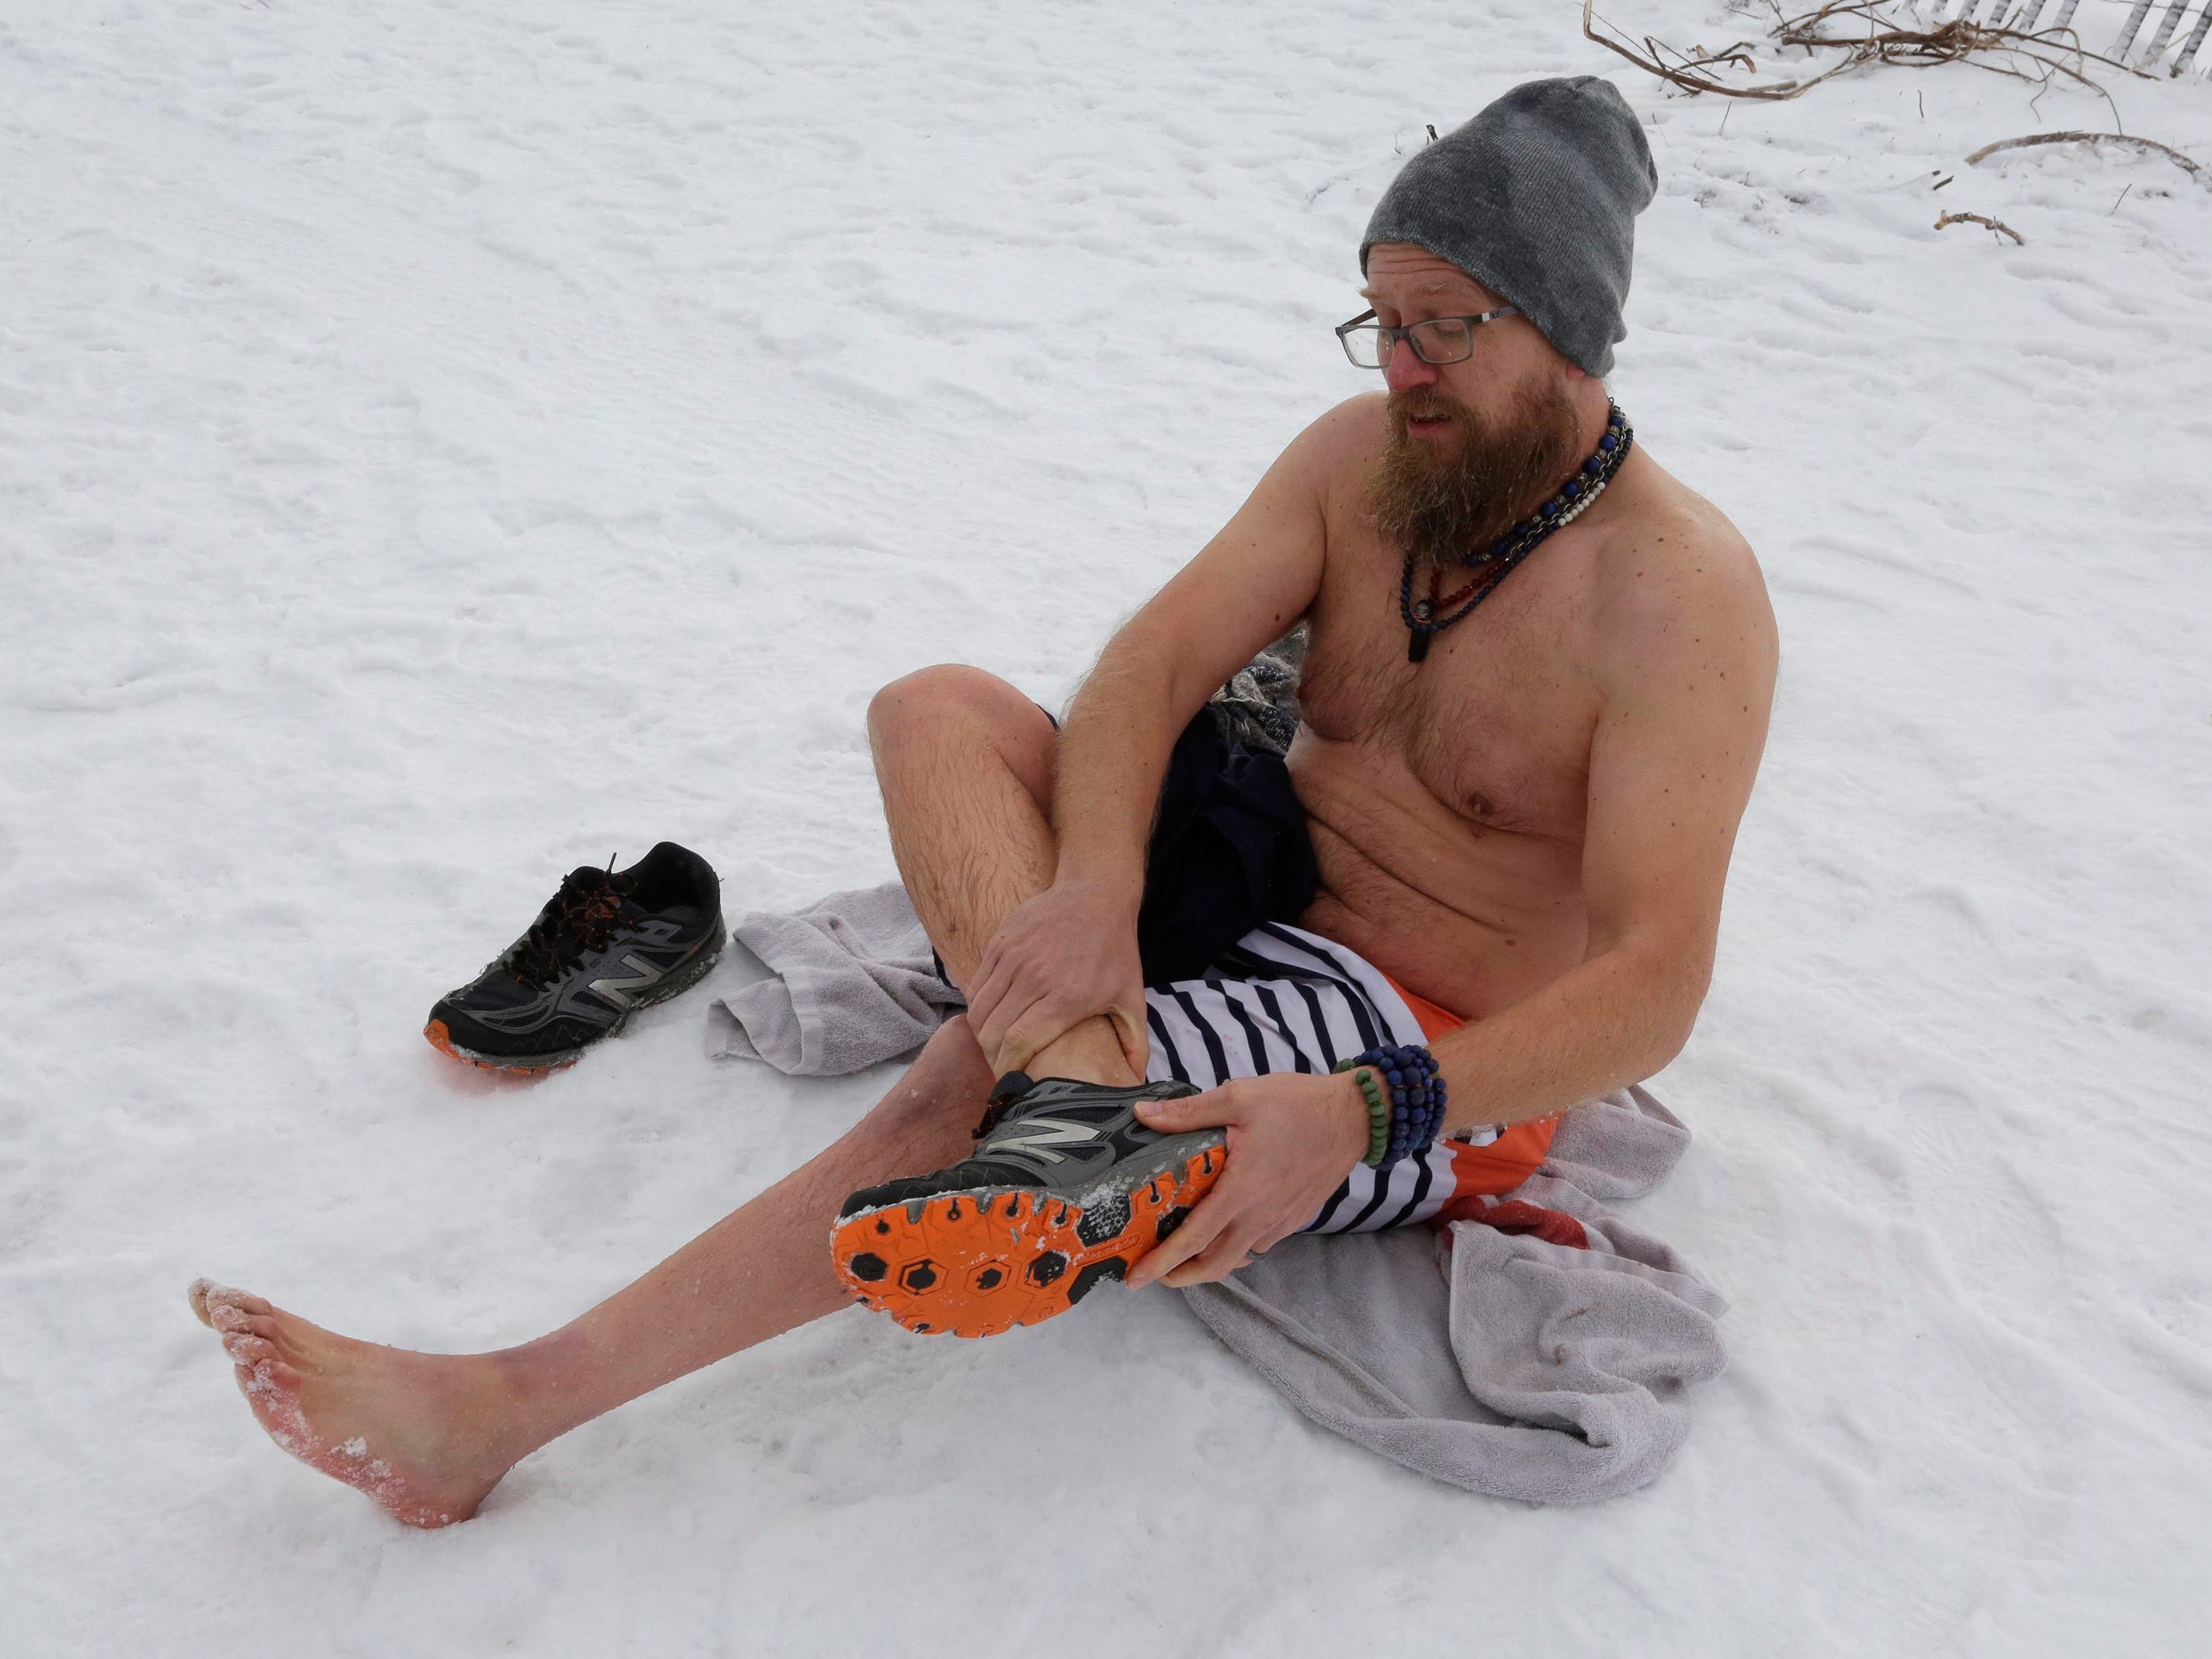 Bryan Reagles of Sheboygan puts on dry socks and shoes after his dip into Lake Michigan, Tuesday, January 1, 2019, at Deland Park in Sheboygan, Wis. He said it was a bit colder than he expected.